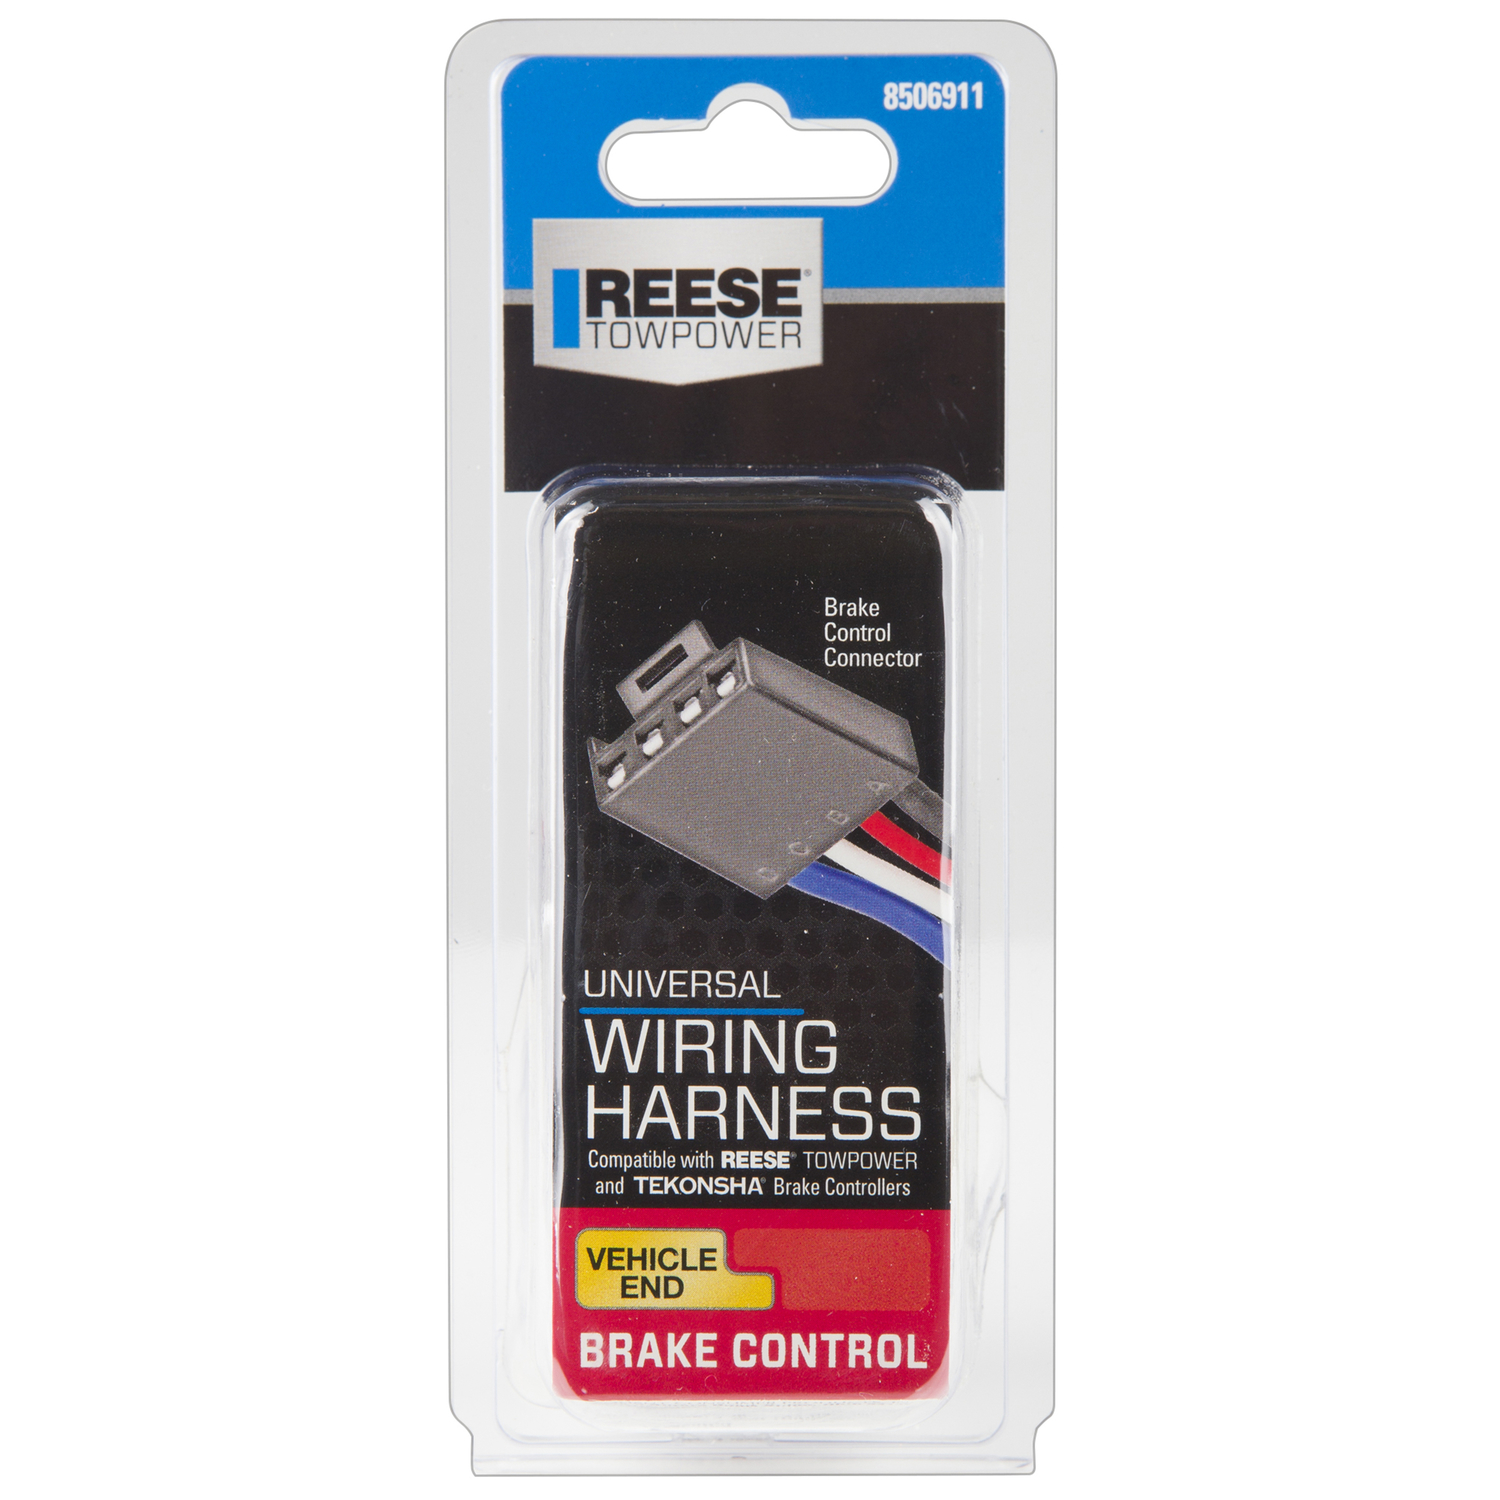 reese brake control harness ace hardware reese trailer wiring harness reese brake control harness